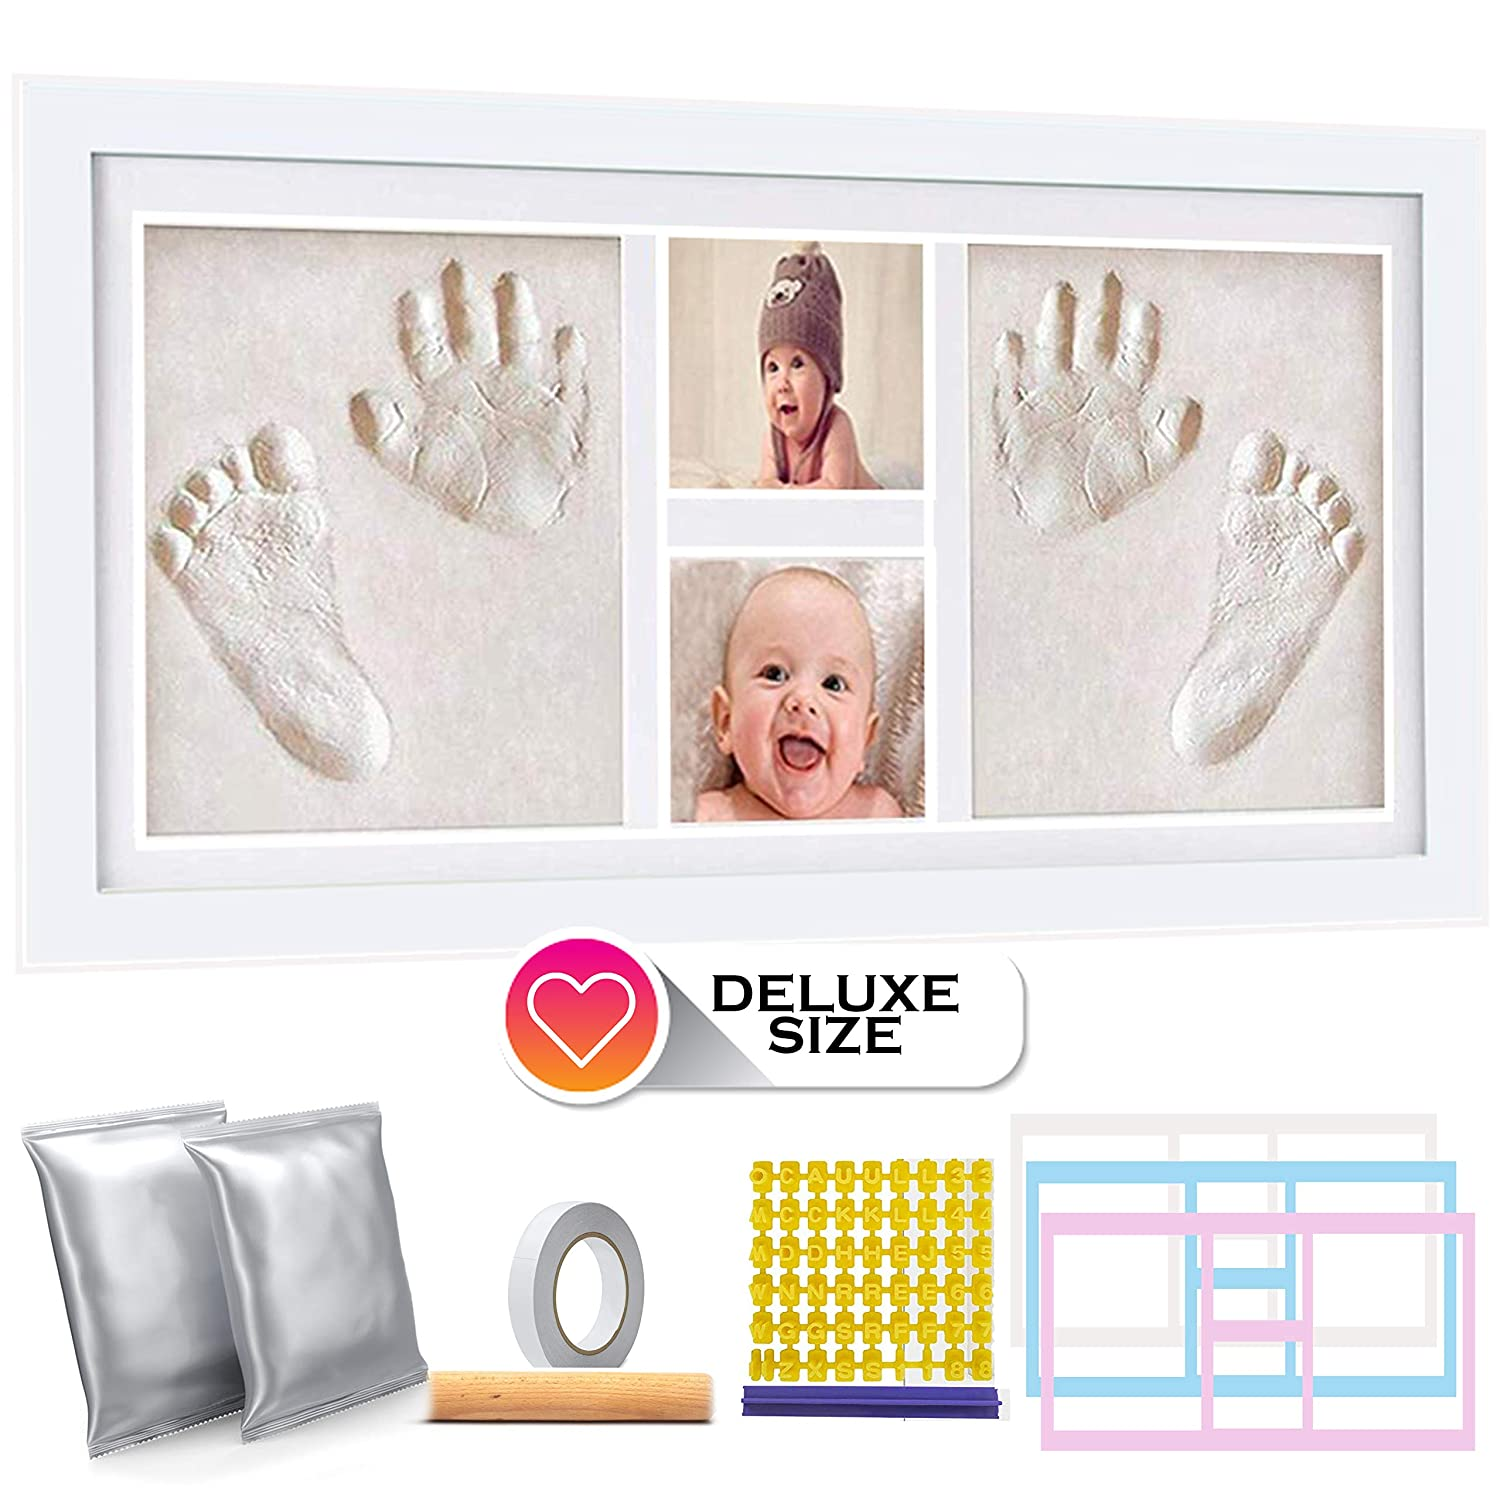 Deluxe Size Baby Hand and Footprint Kit - 16 x 9 inches Baby Picture Frame Kit | Non Toxic No Bake Clay Keepsake Frame - Baby Shower Present | Newborn Baby Gift | Twin Babies | 600 Grams of Clay